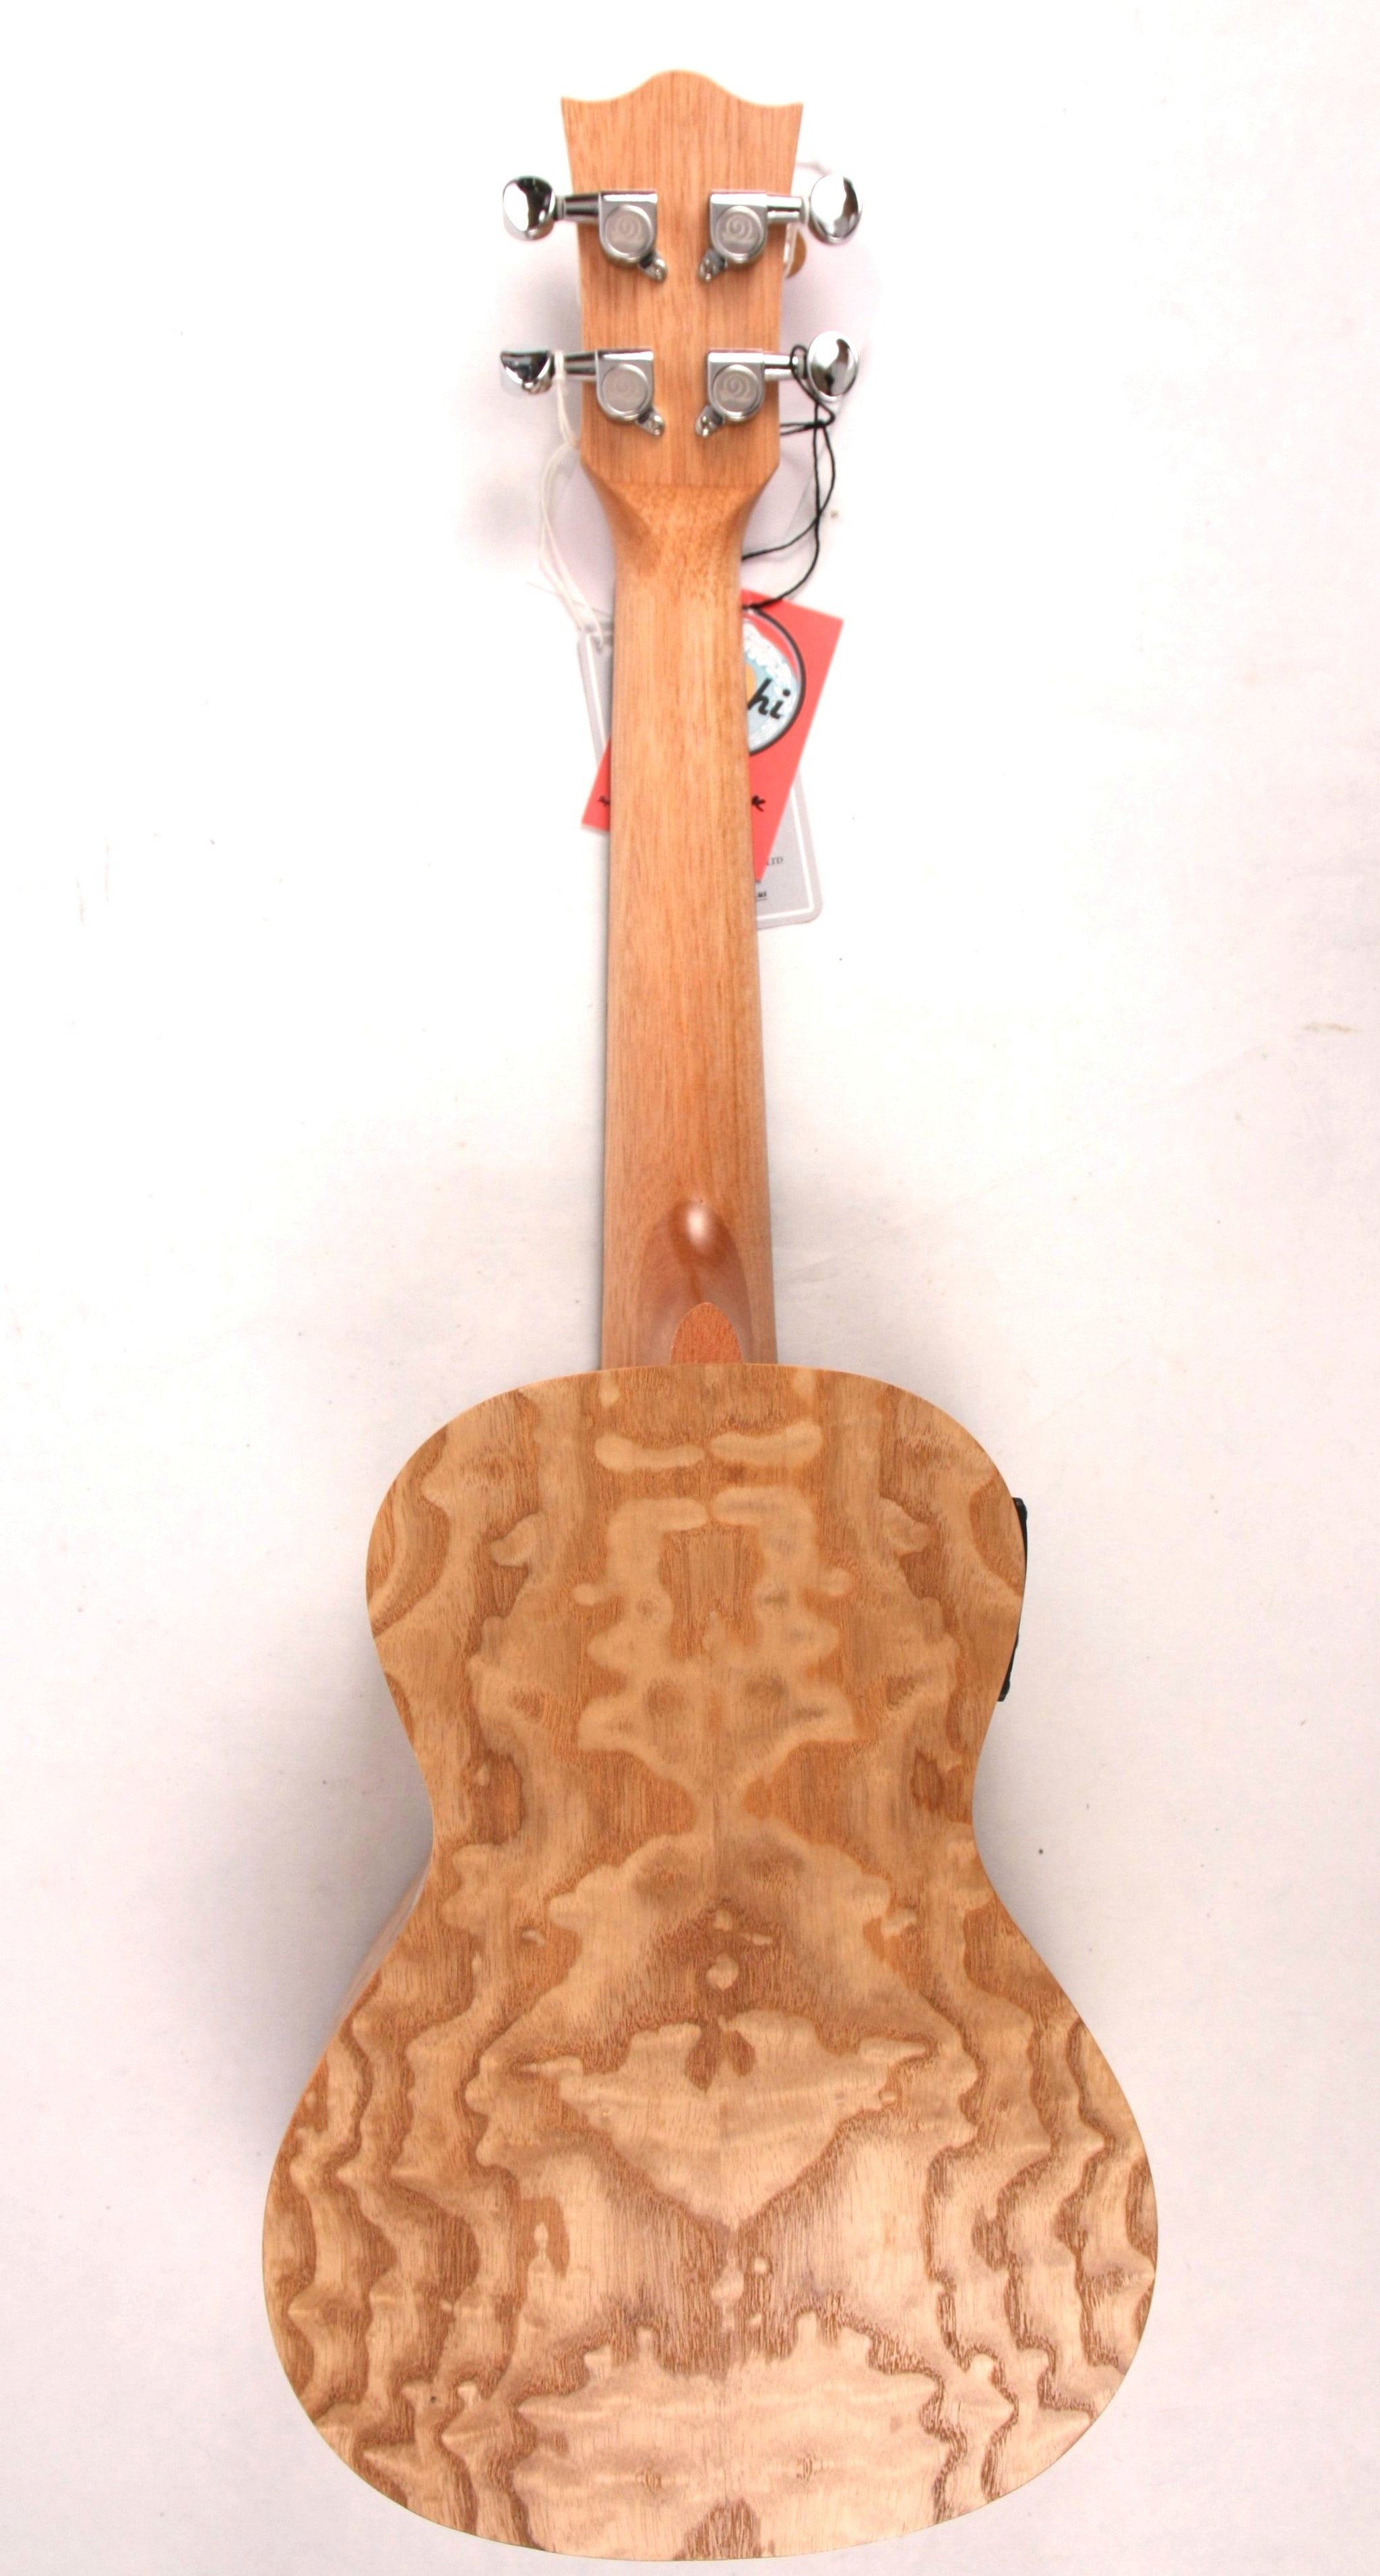 Amahi Snail Quilted Ash Acoustic/Electric Concert Ukulele Uke NEW w/ Gig Bag FREE SHIPPING